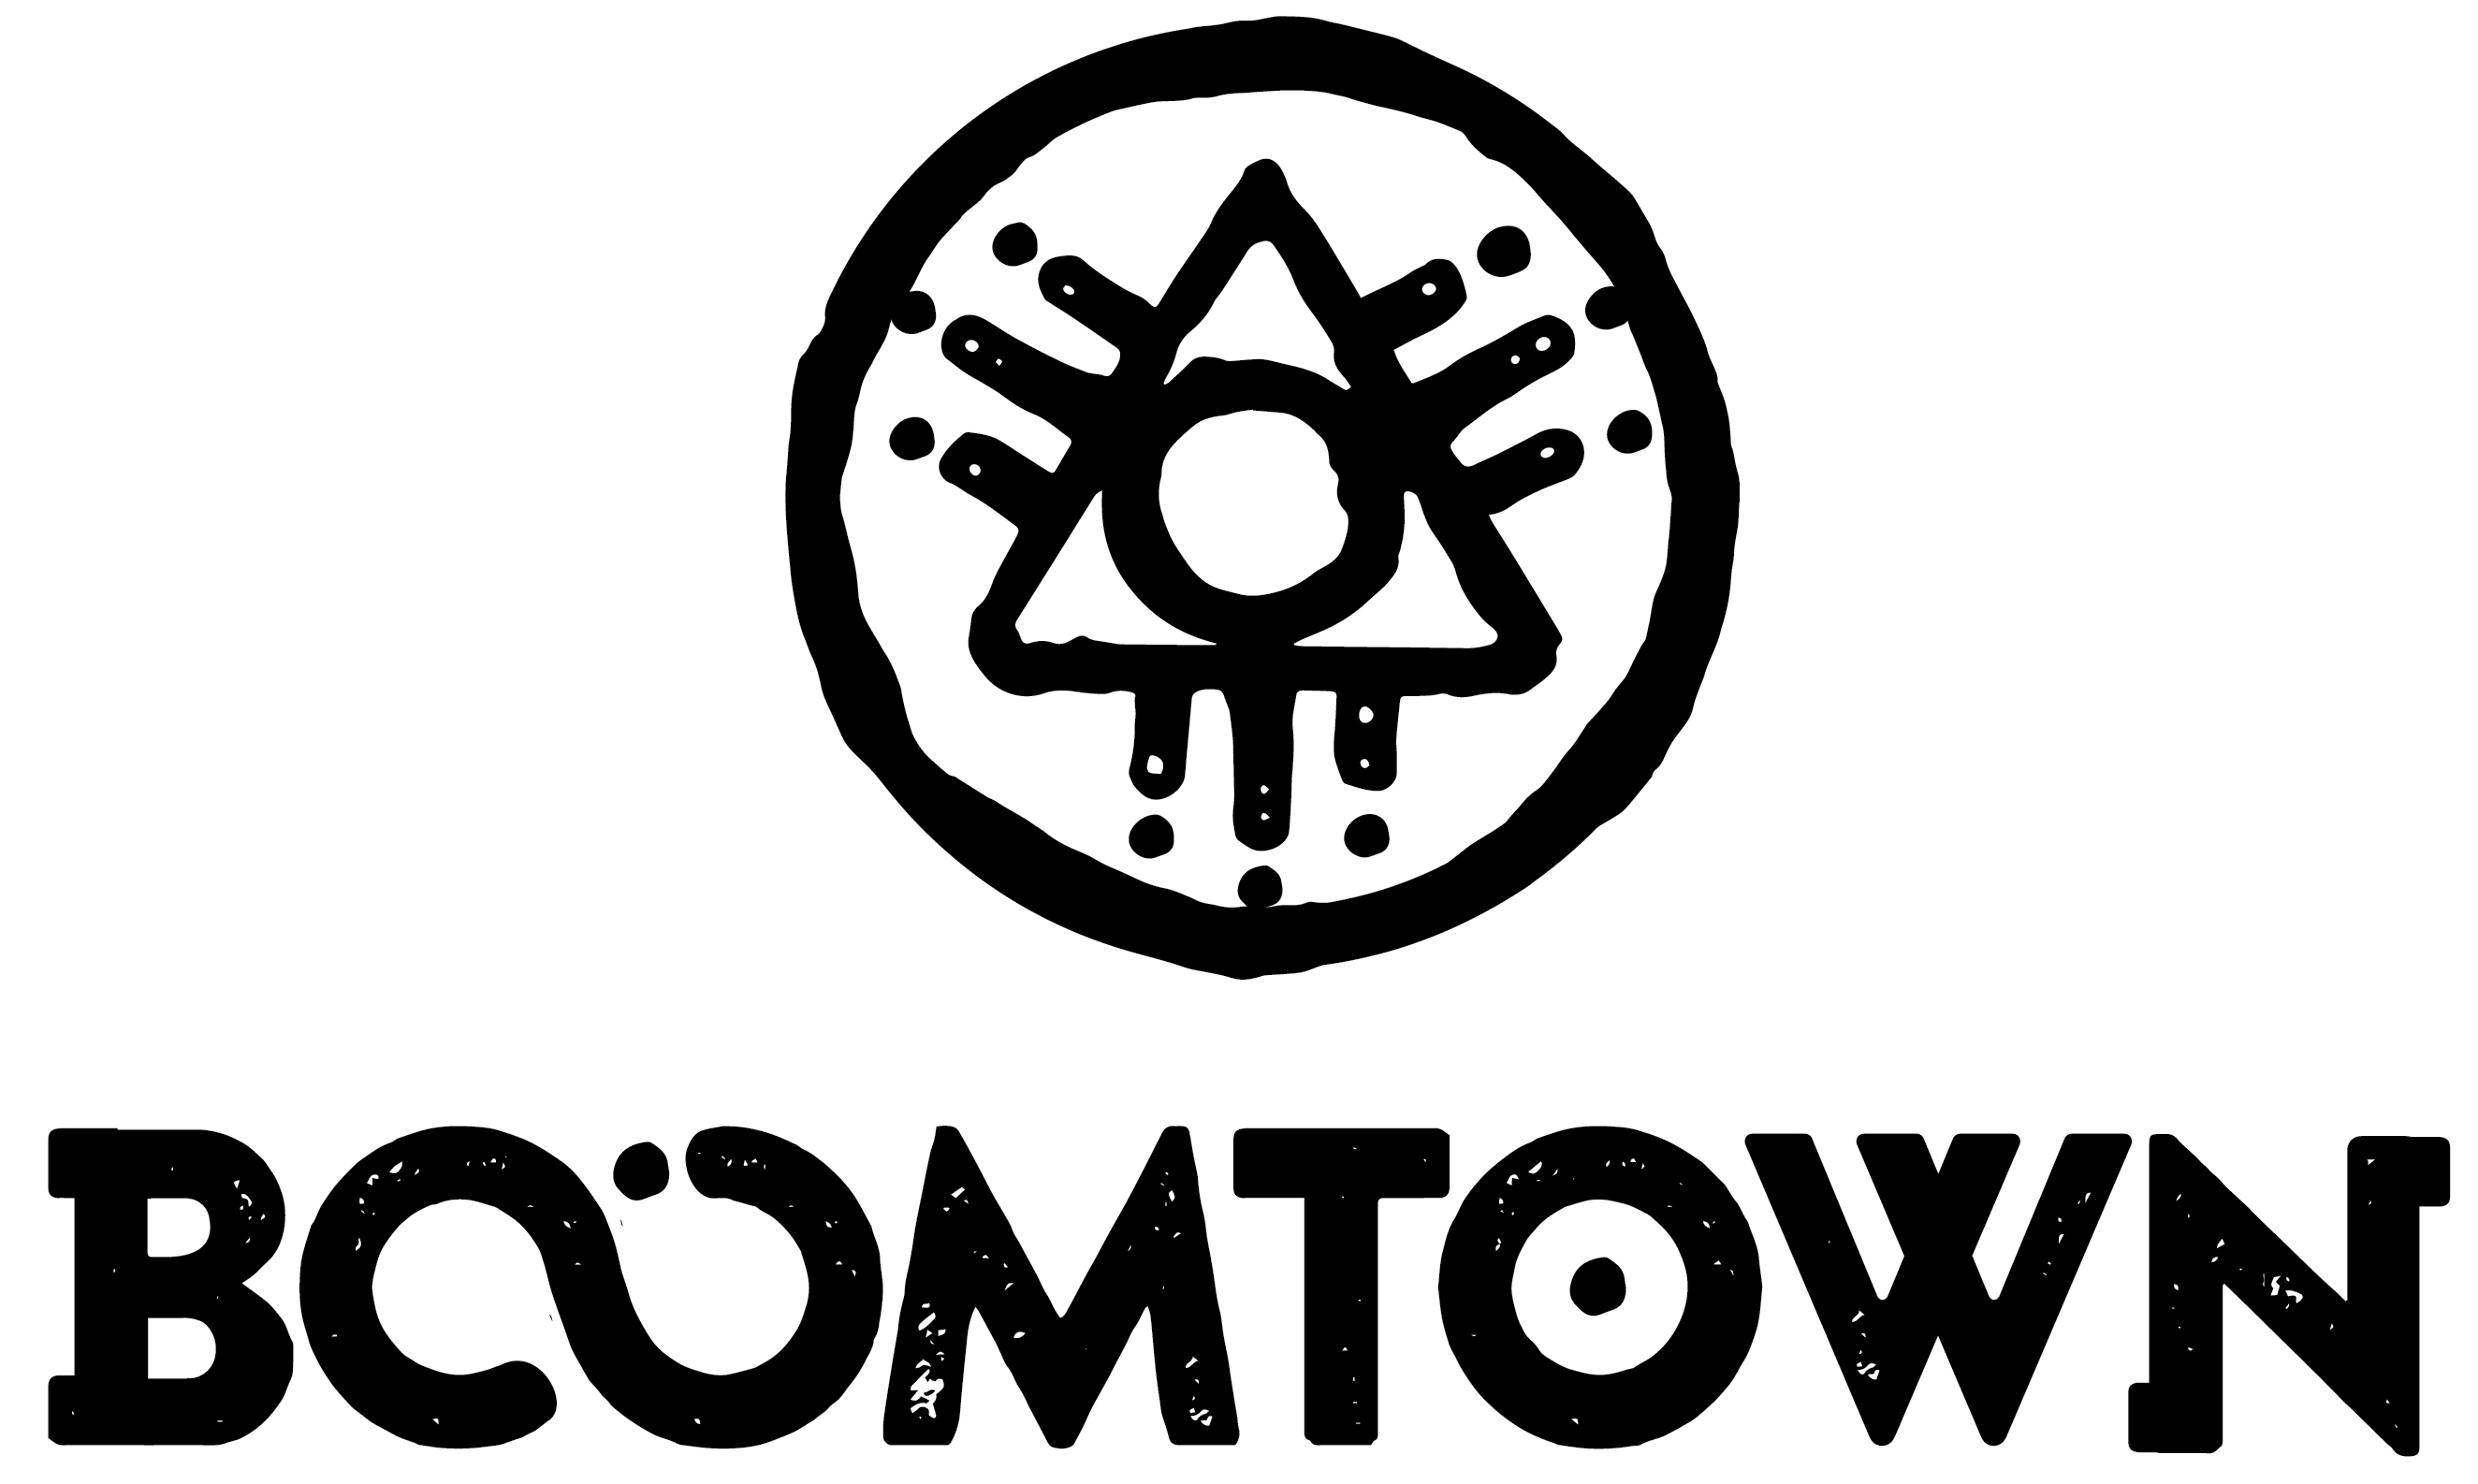 Boomtown Fair logo 2017